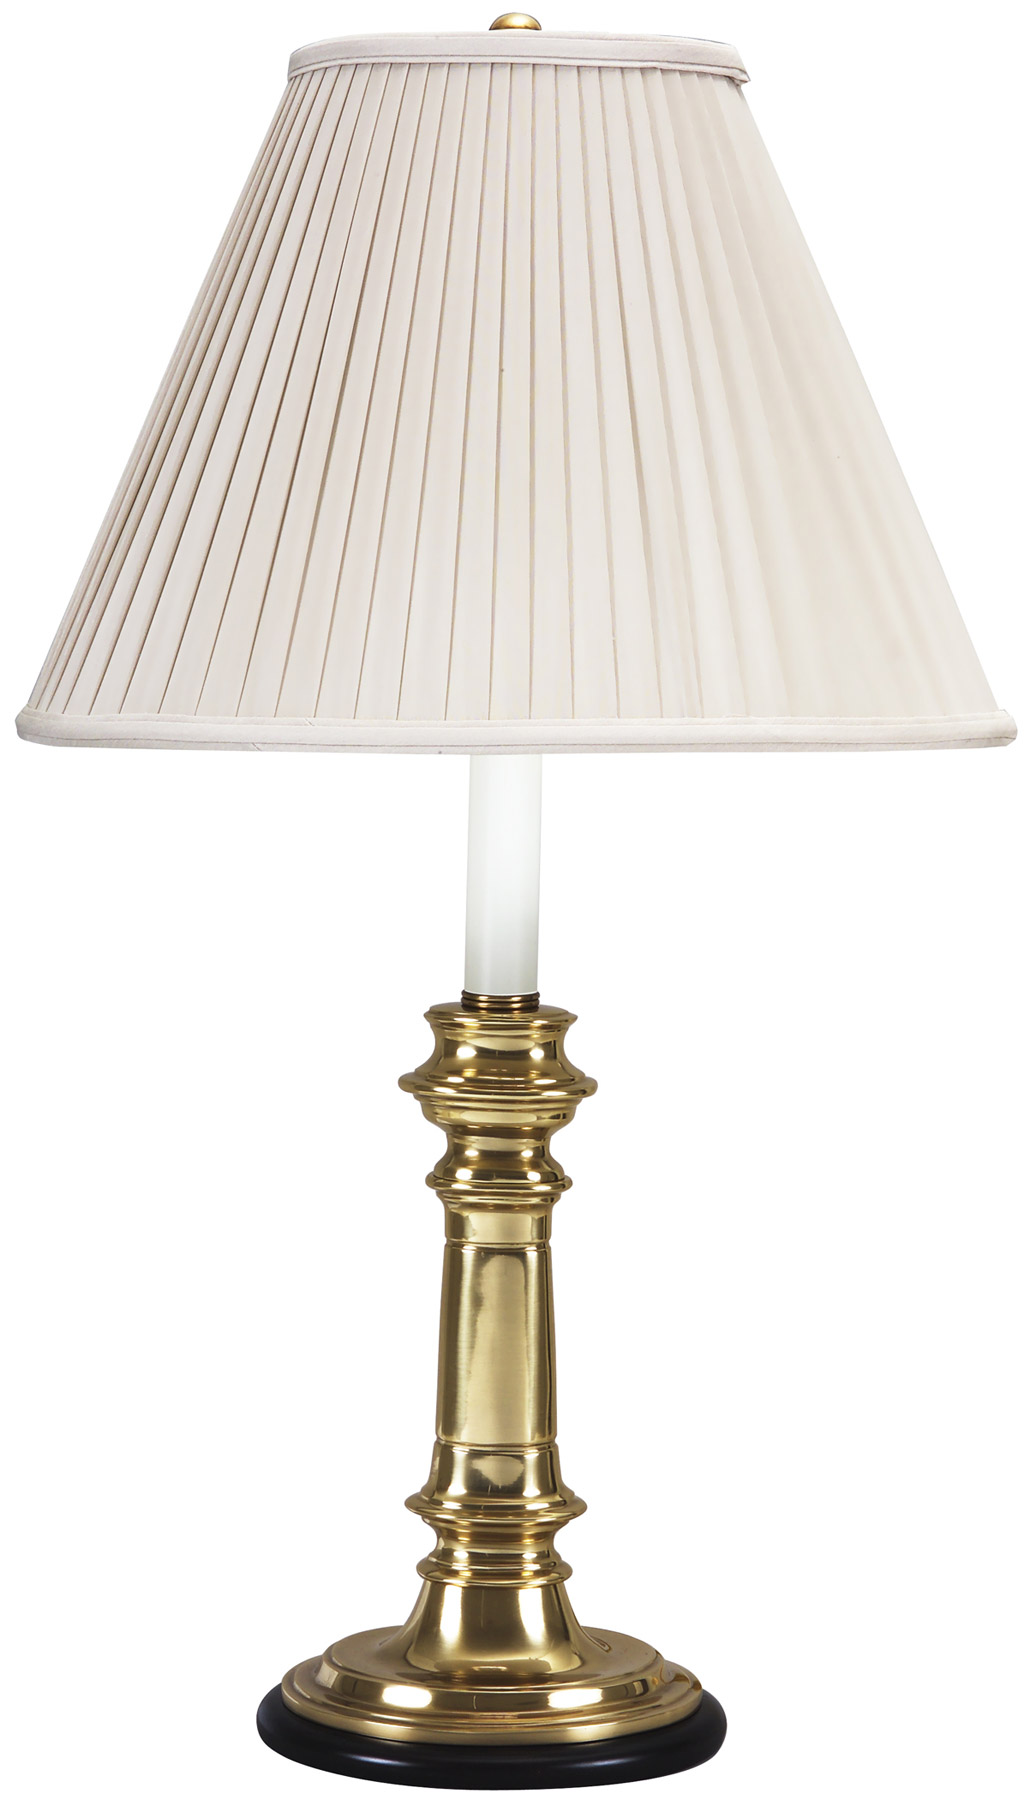 Frederick Cooper 65043 Candlestick Table Lamp